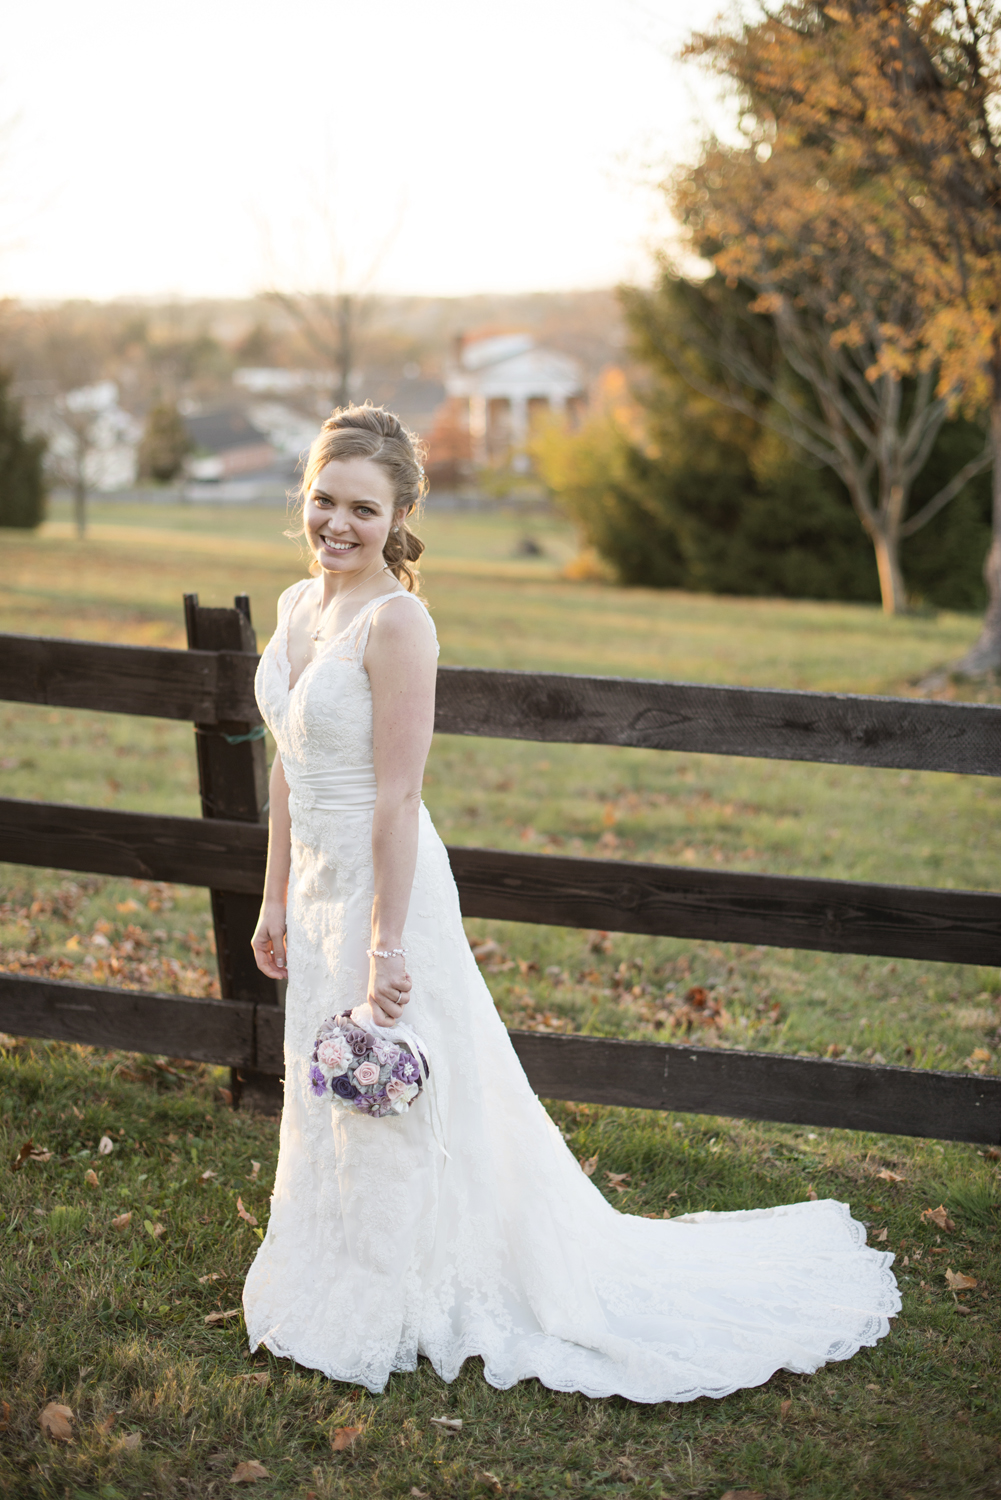 Bridal portraits in all lace wedding dress